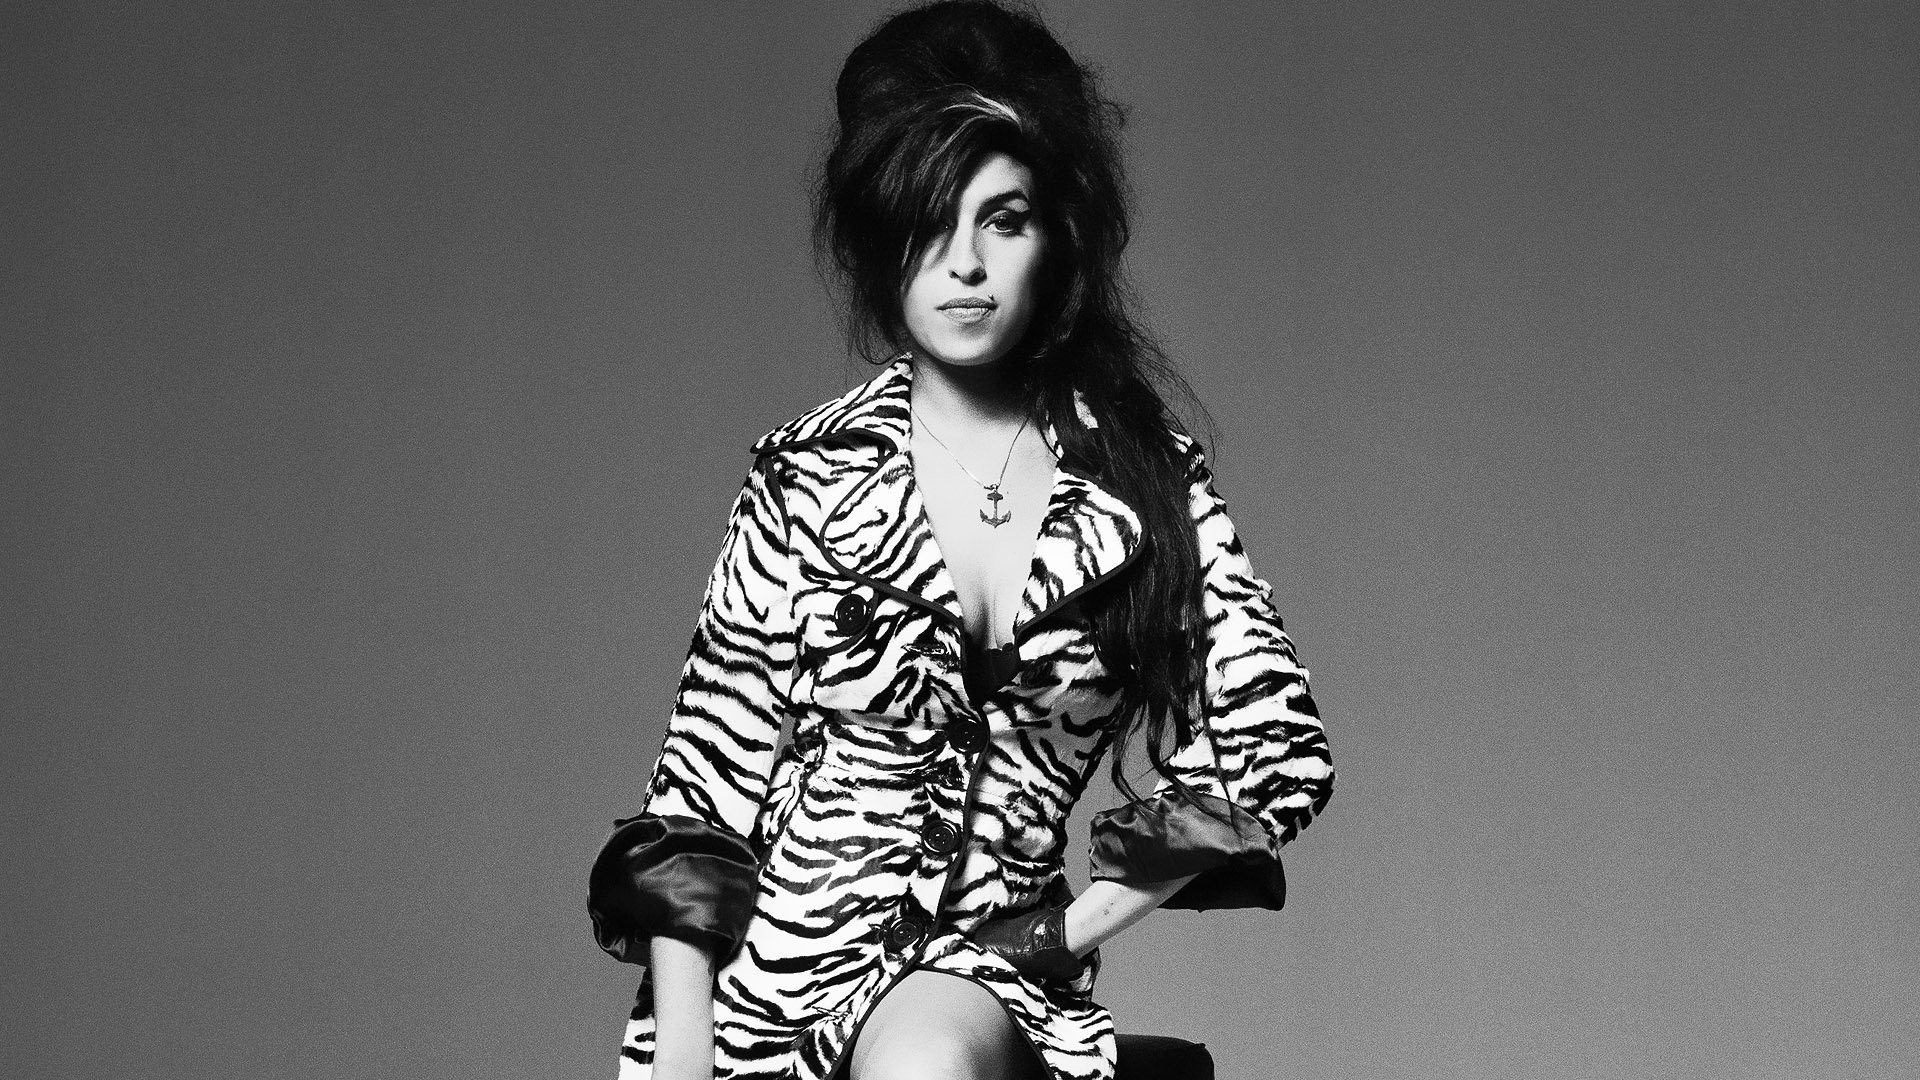 Back to Black - Amy Winehouse - Download Album Free Mp3 ...